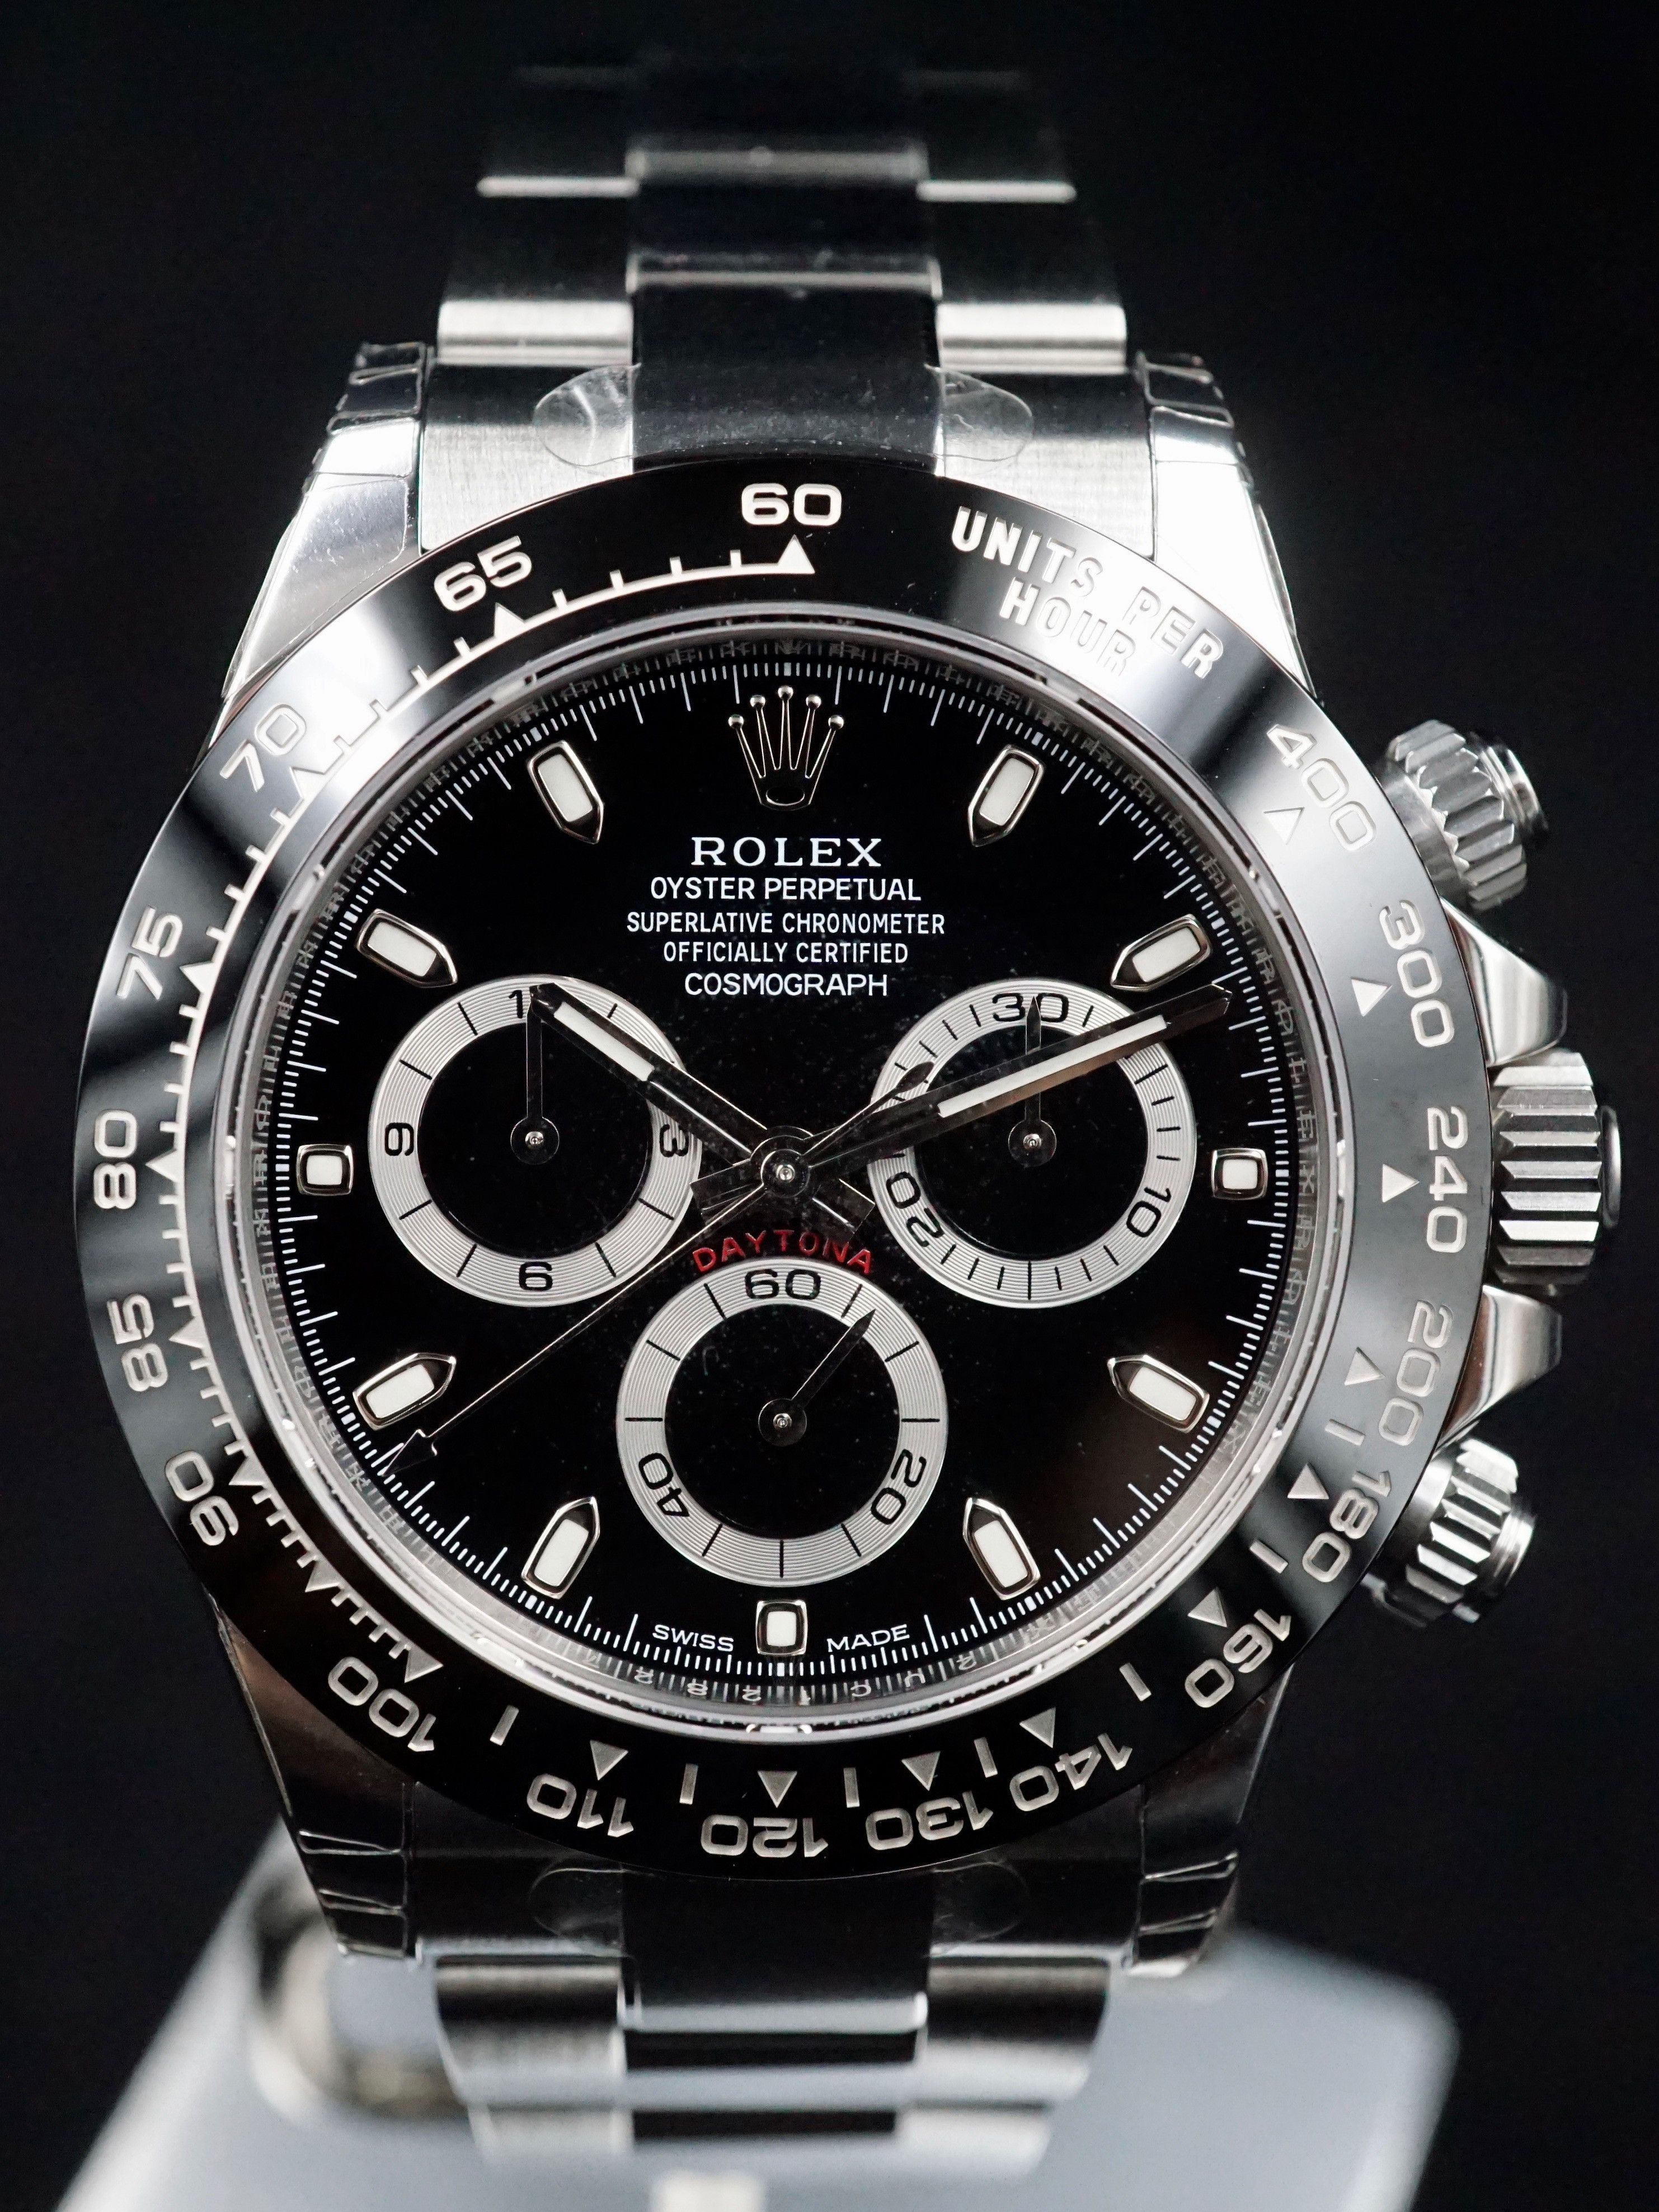 2016 Rolex Ceramic Daytona 116500LN Black Dial with Box and Papers ... eb6adc5d0c